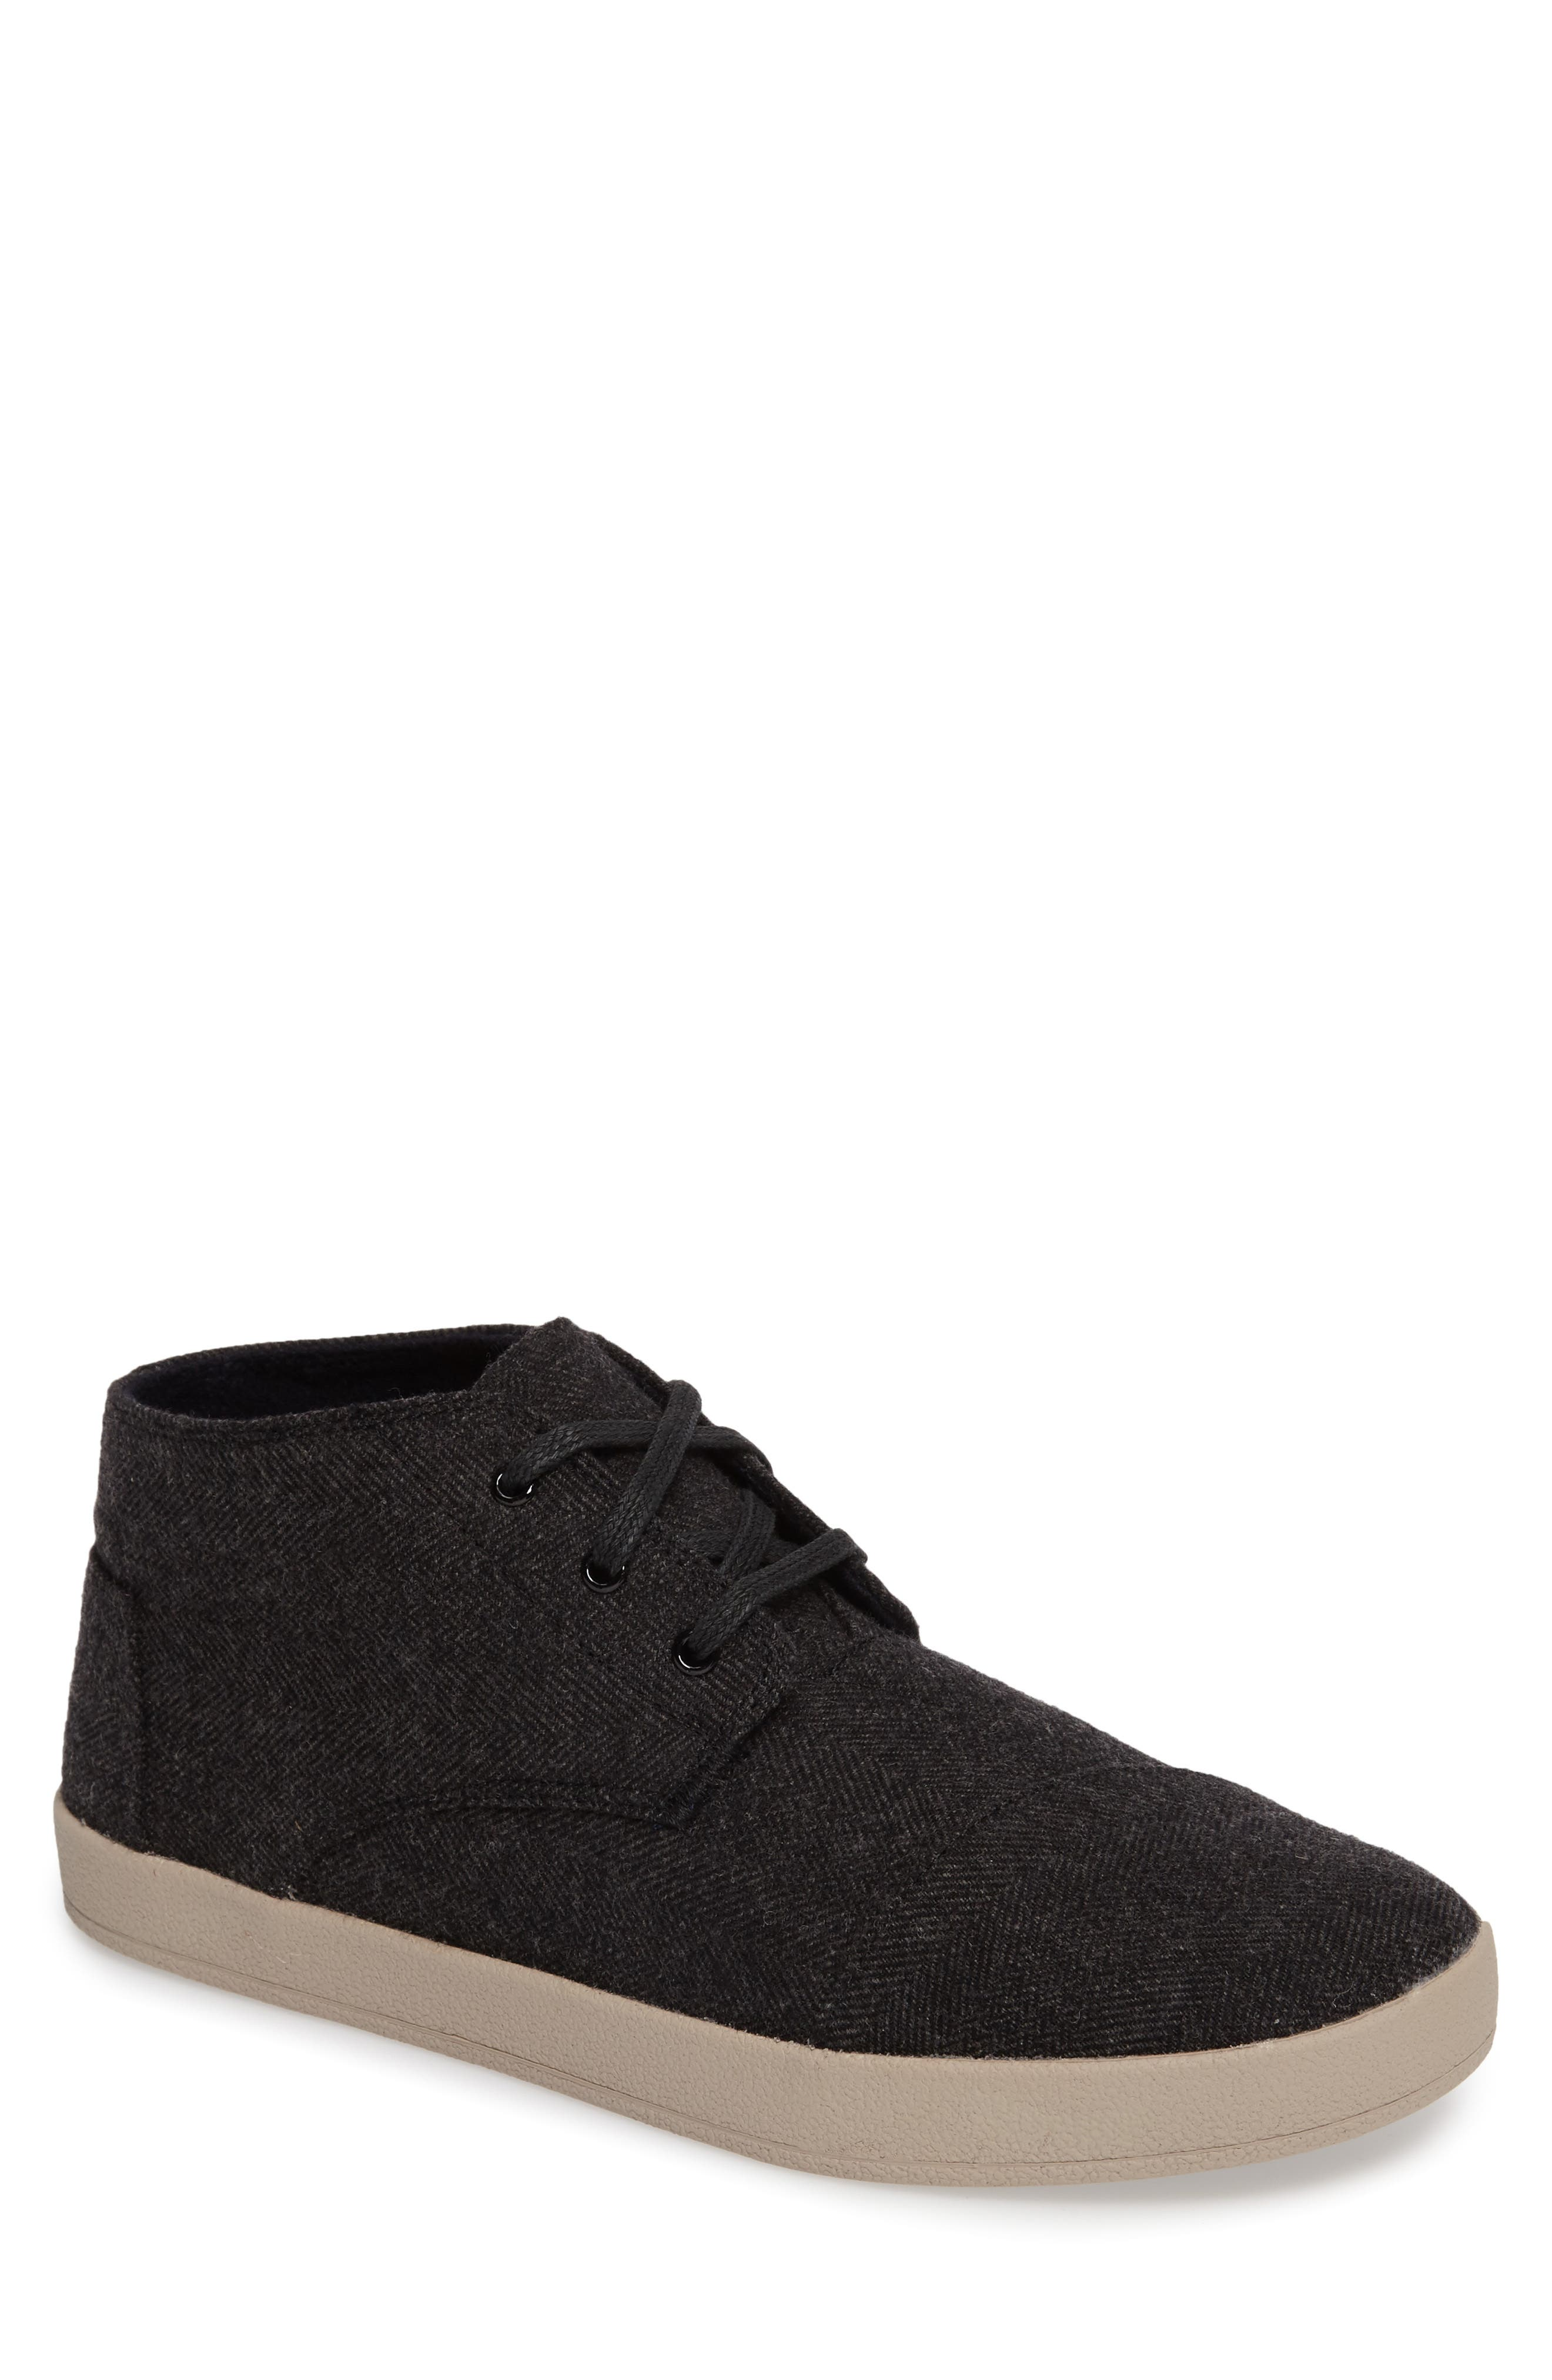 'Paseo Mid' Sneaker,                         Main,                         color, 020